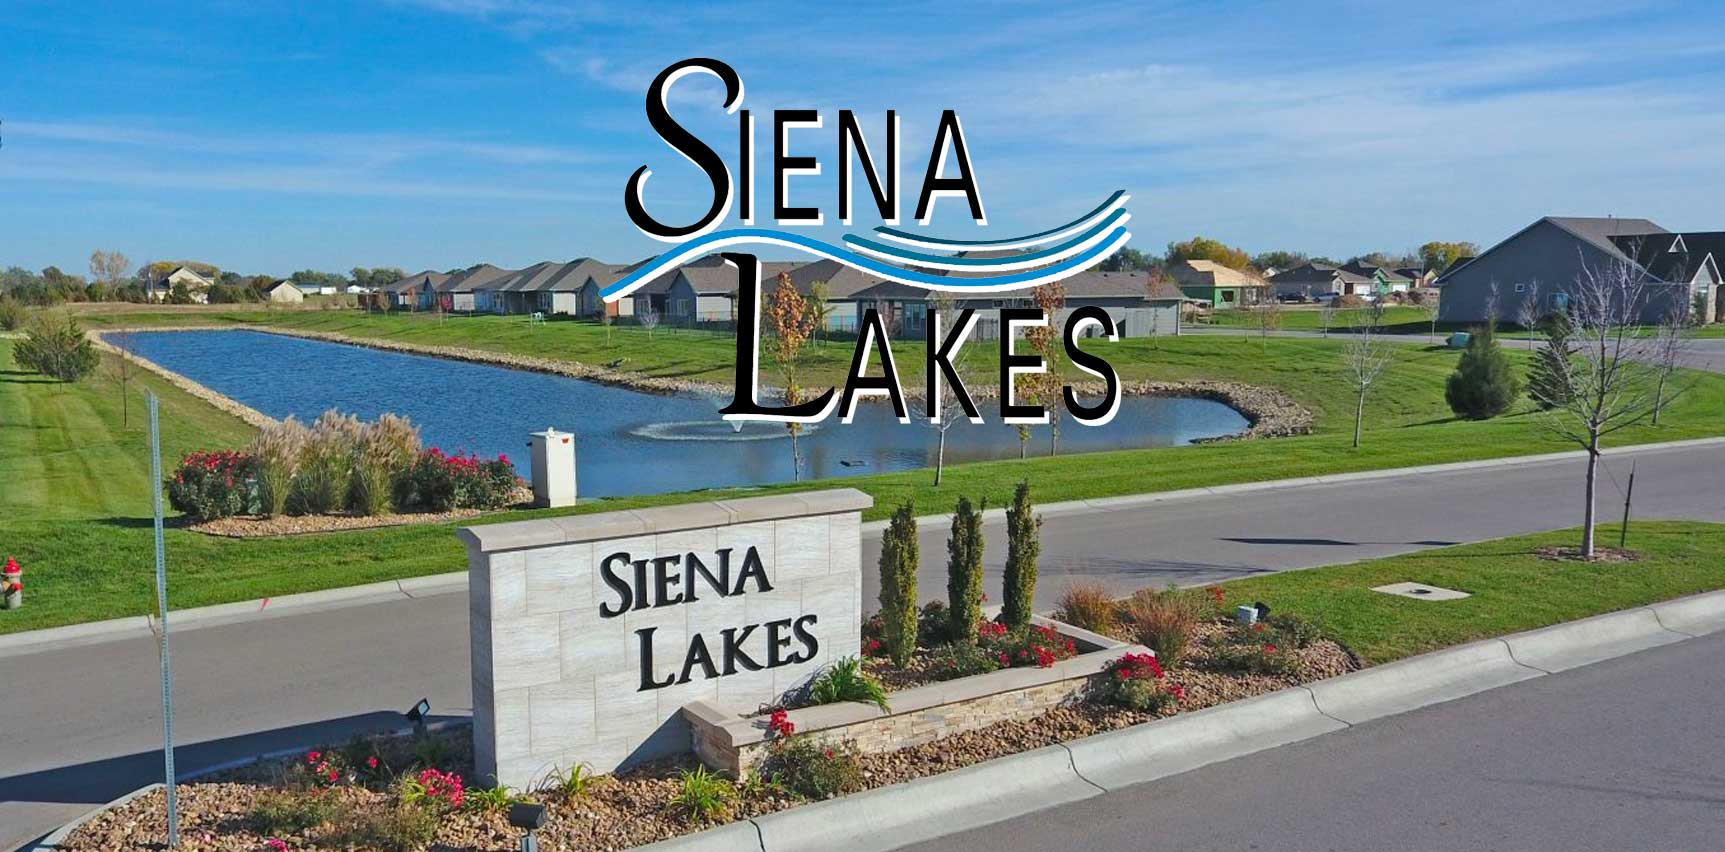 House for sale: Siena Lakes